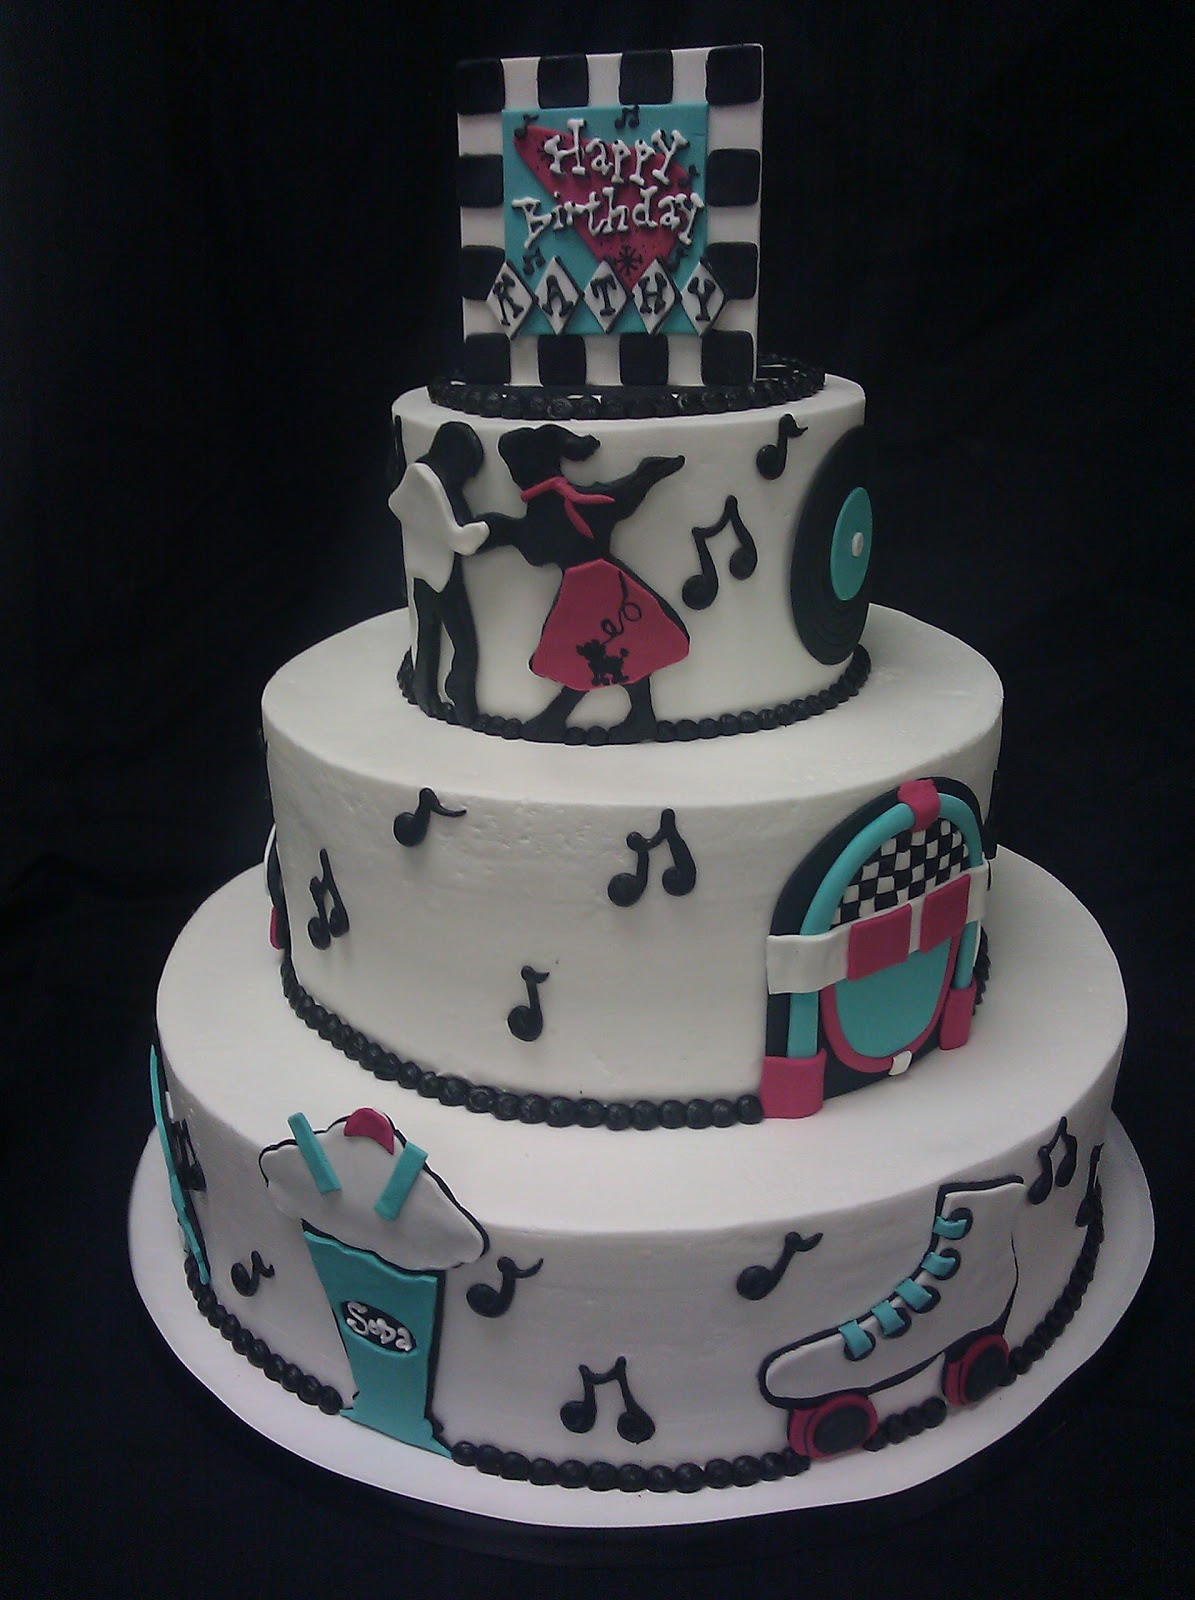 What s New at Cheri s...: 50 s Themed Birthday Cake